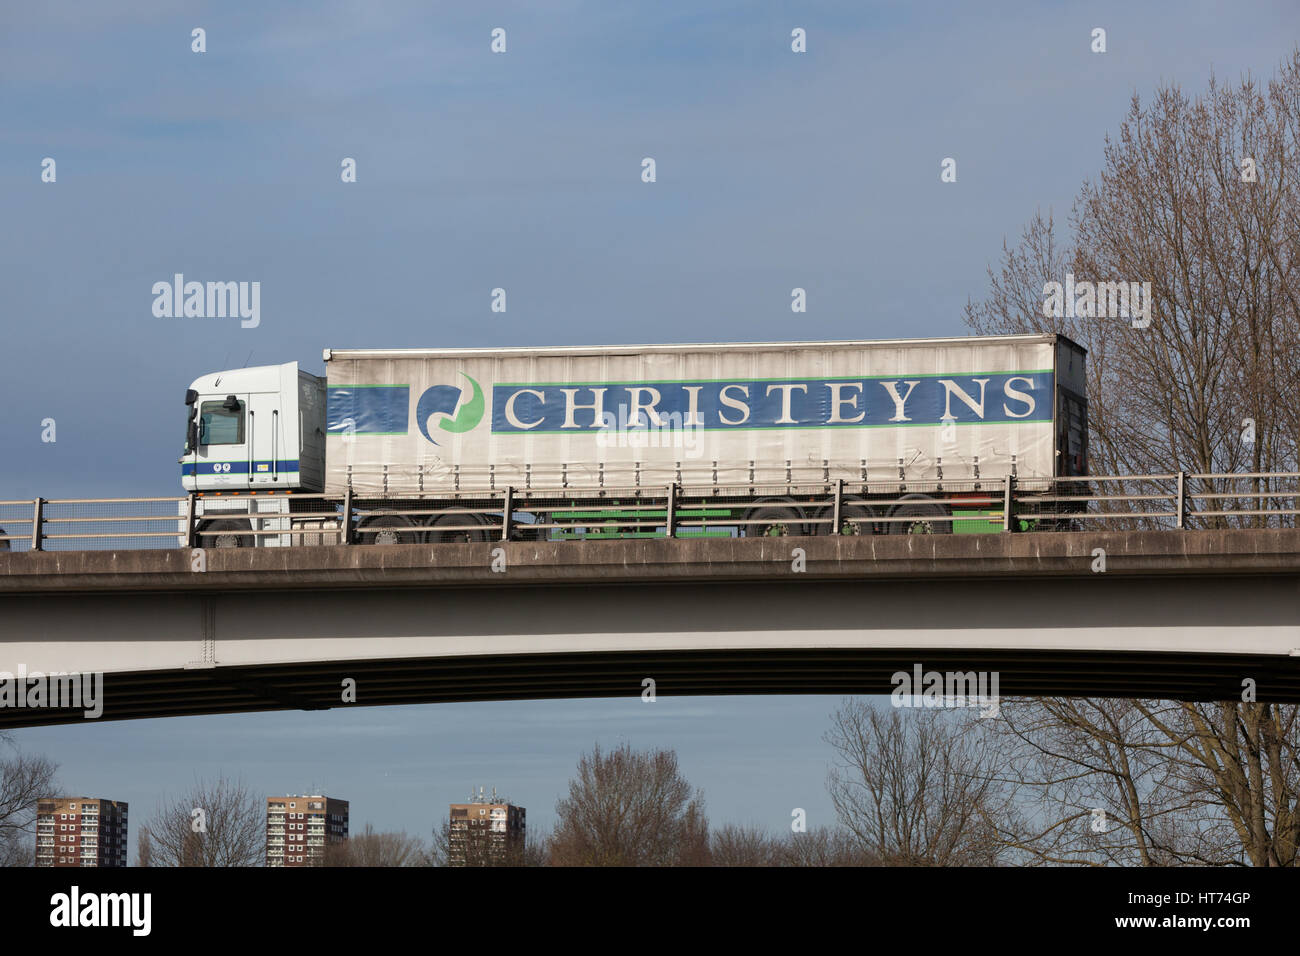 Christeyns cleaning and hygiene products truck travelling through the Midlands. - Stock Image